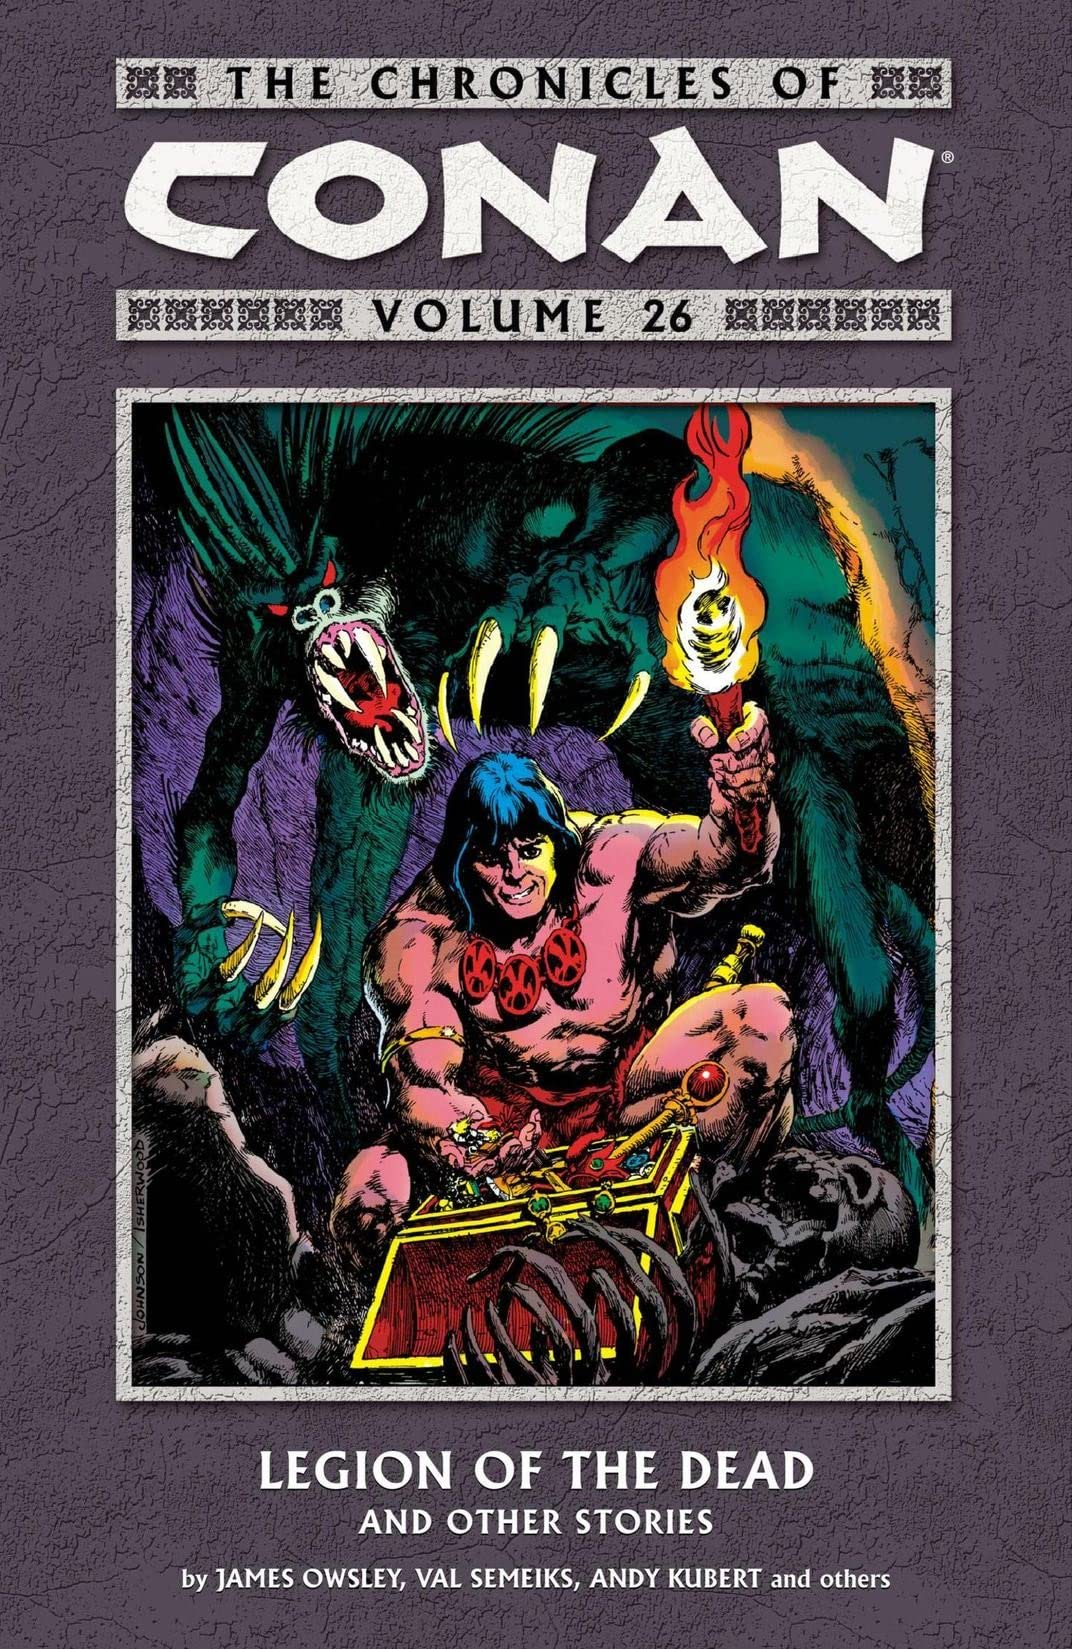 Chronicles of Conan Vol. 26: Legion of the Dead and Other Stories